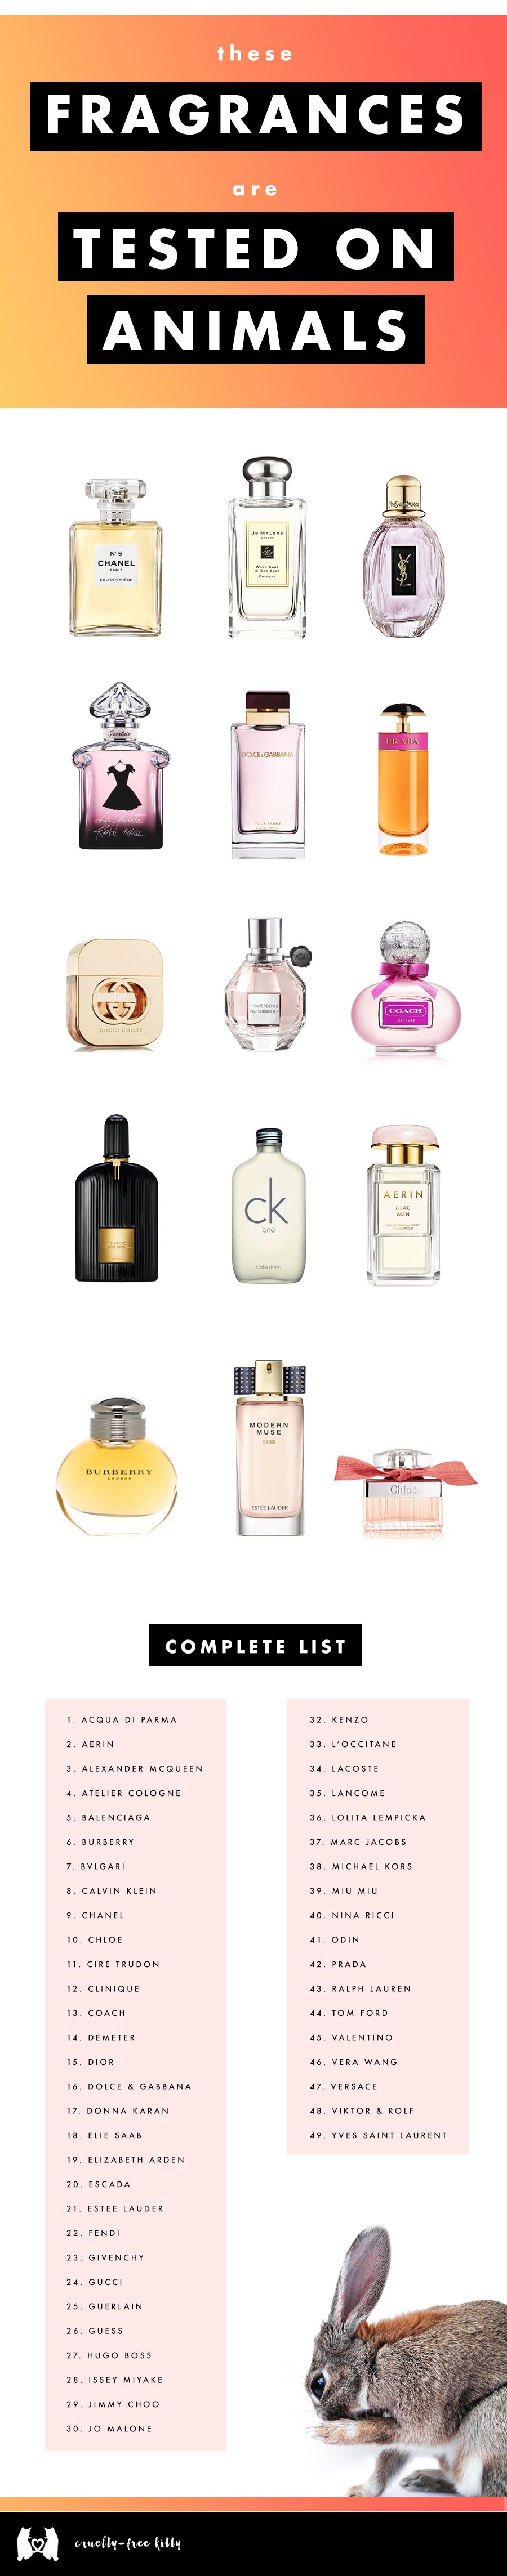 Companies Cruelty Free Perfume And That Do GuideFragrance Don't CtshQdBorx